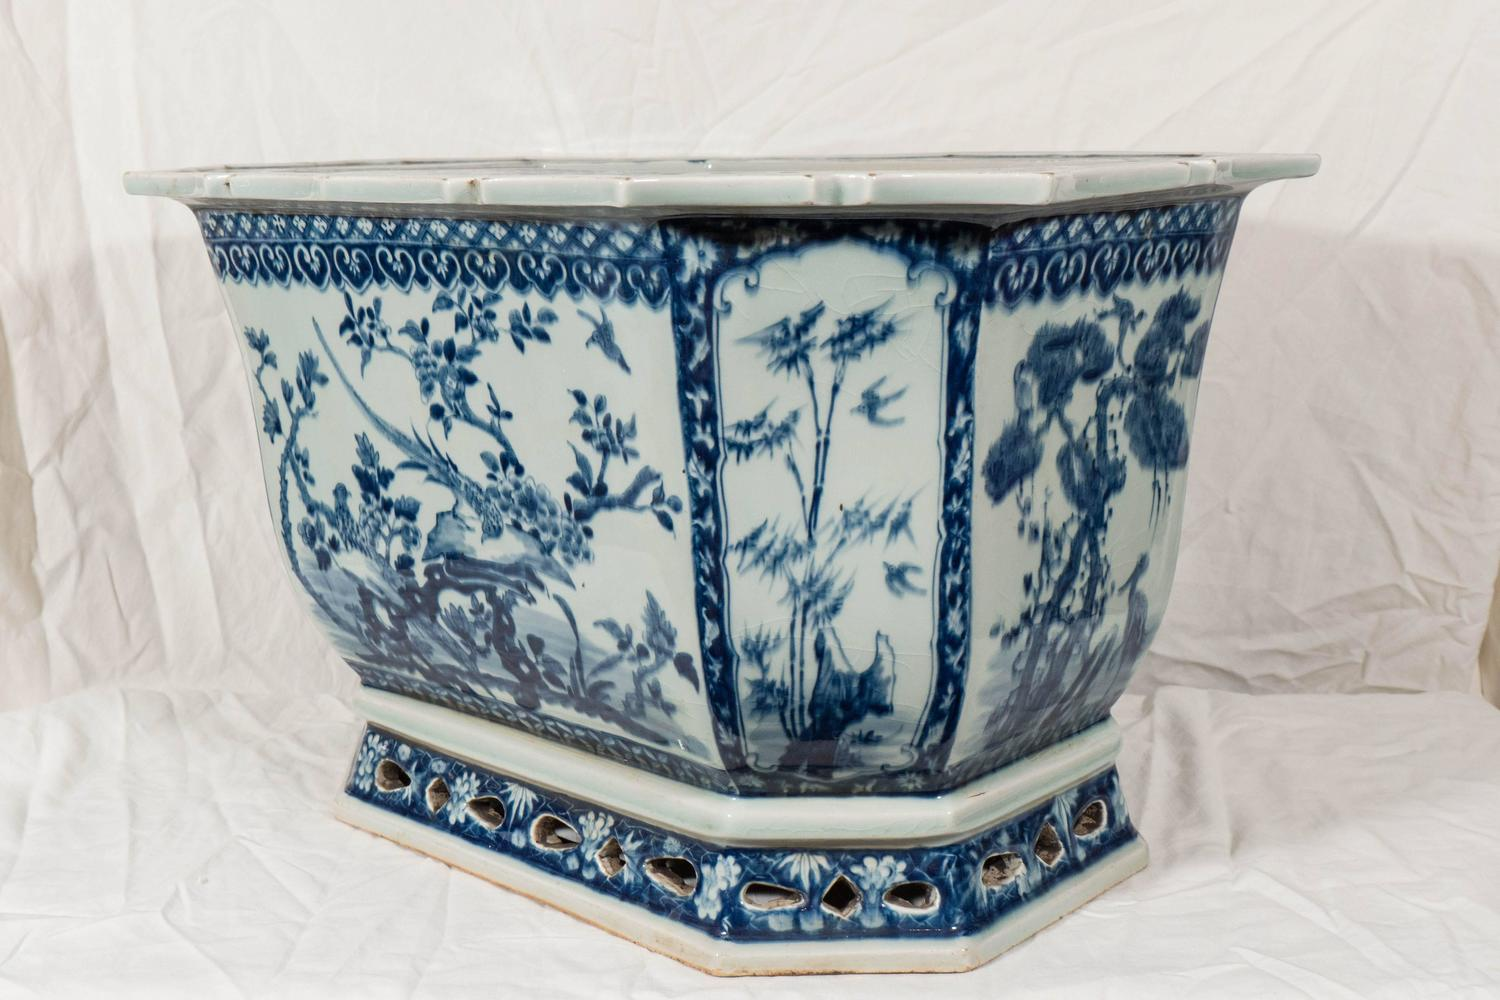 Porcelain Planters Ceramic A Chinese Porcelain Blue And White Planter At 1stdibs